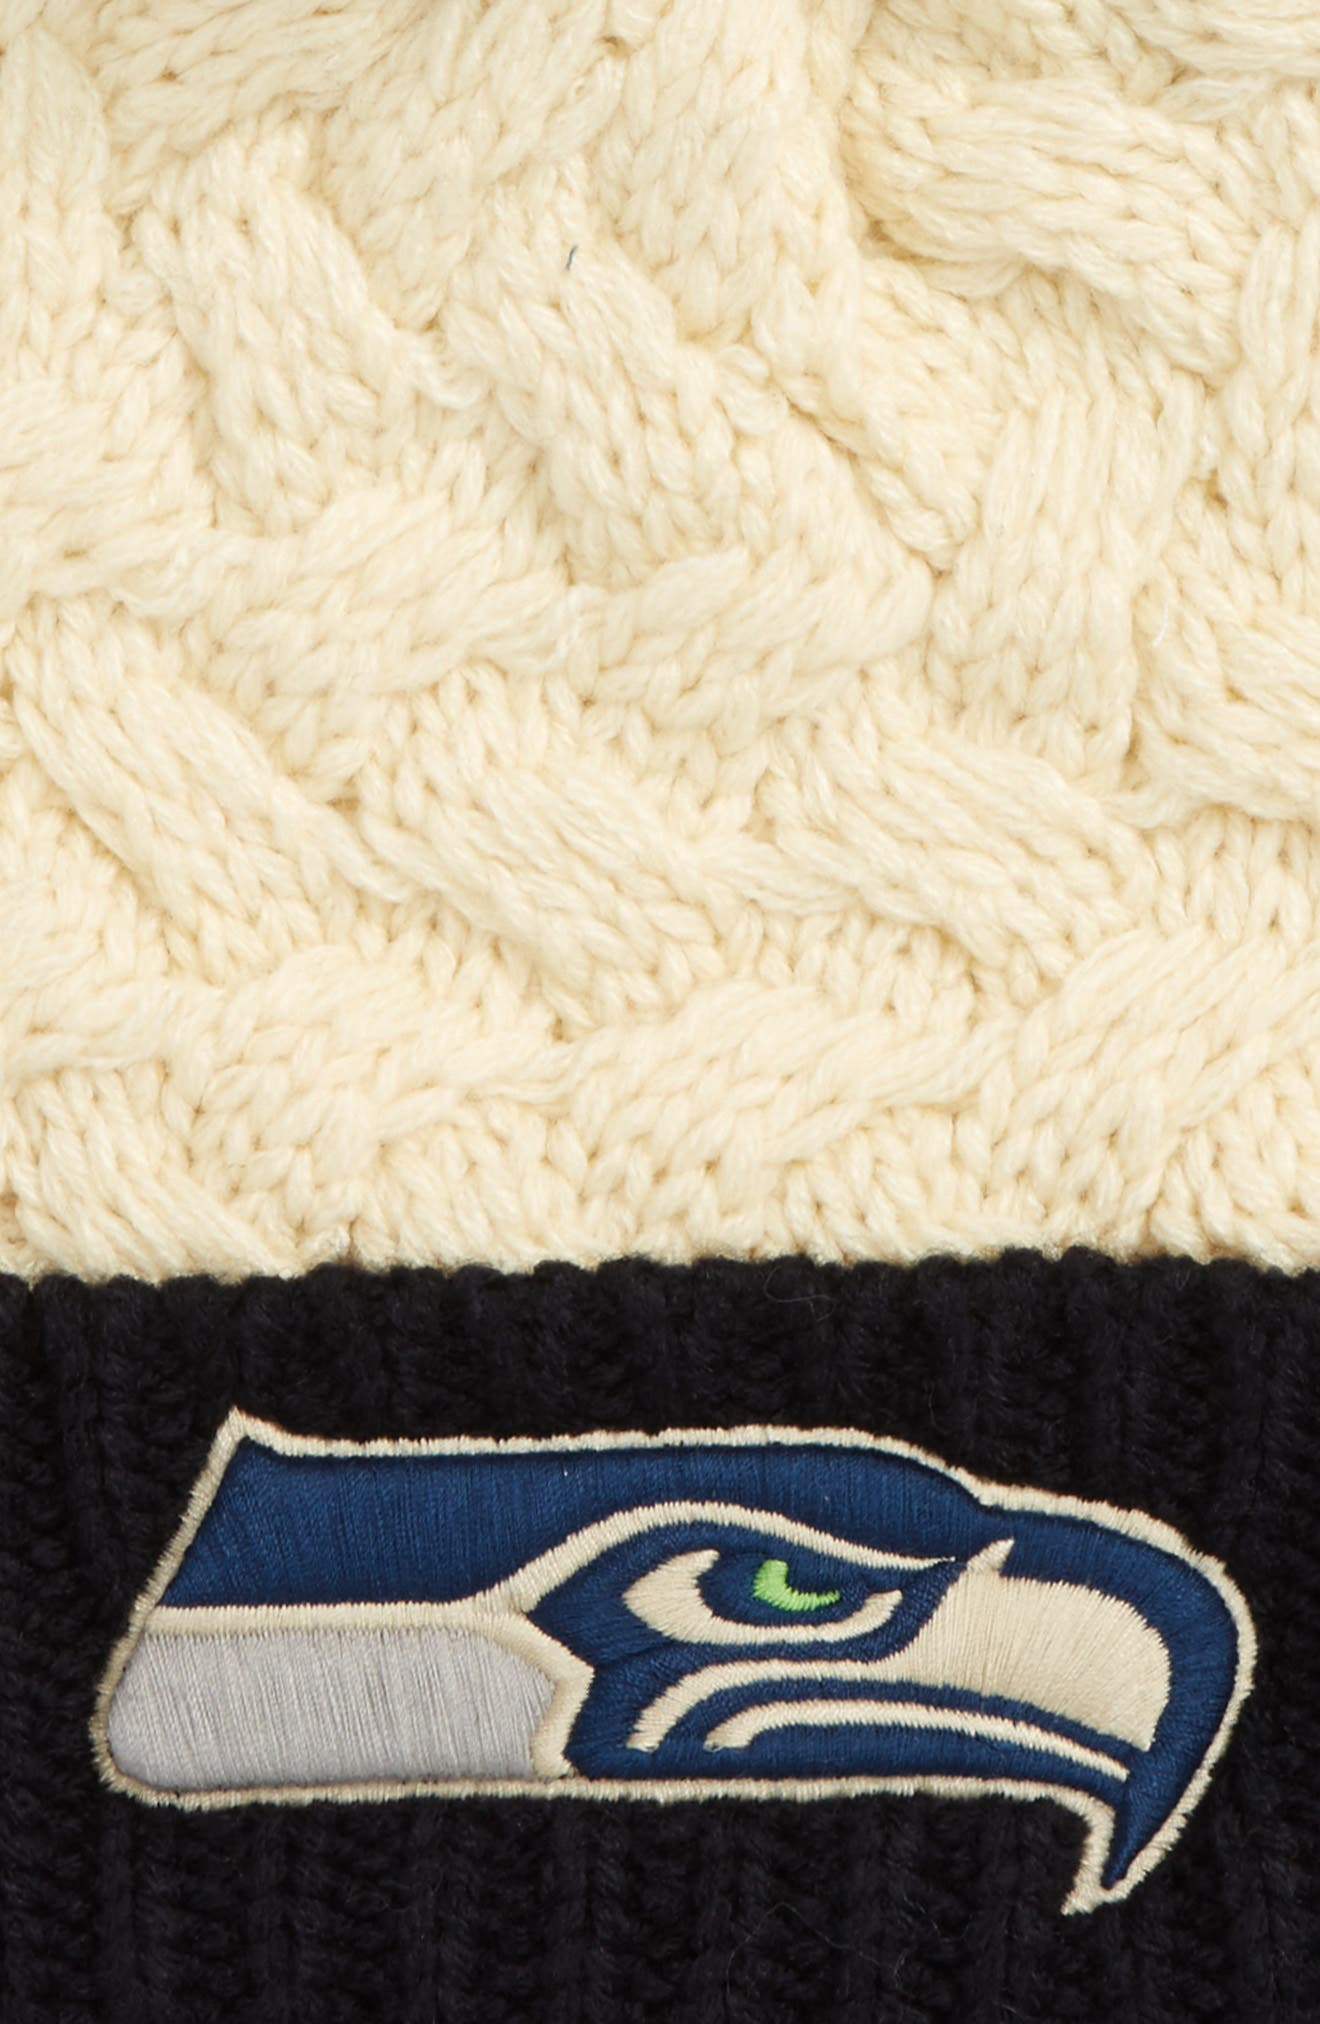 Matterhorn Seattle Seahawks Beanie,                             Alternate thumbnail 2, color,                             White